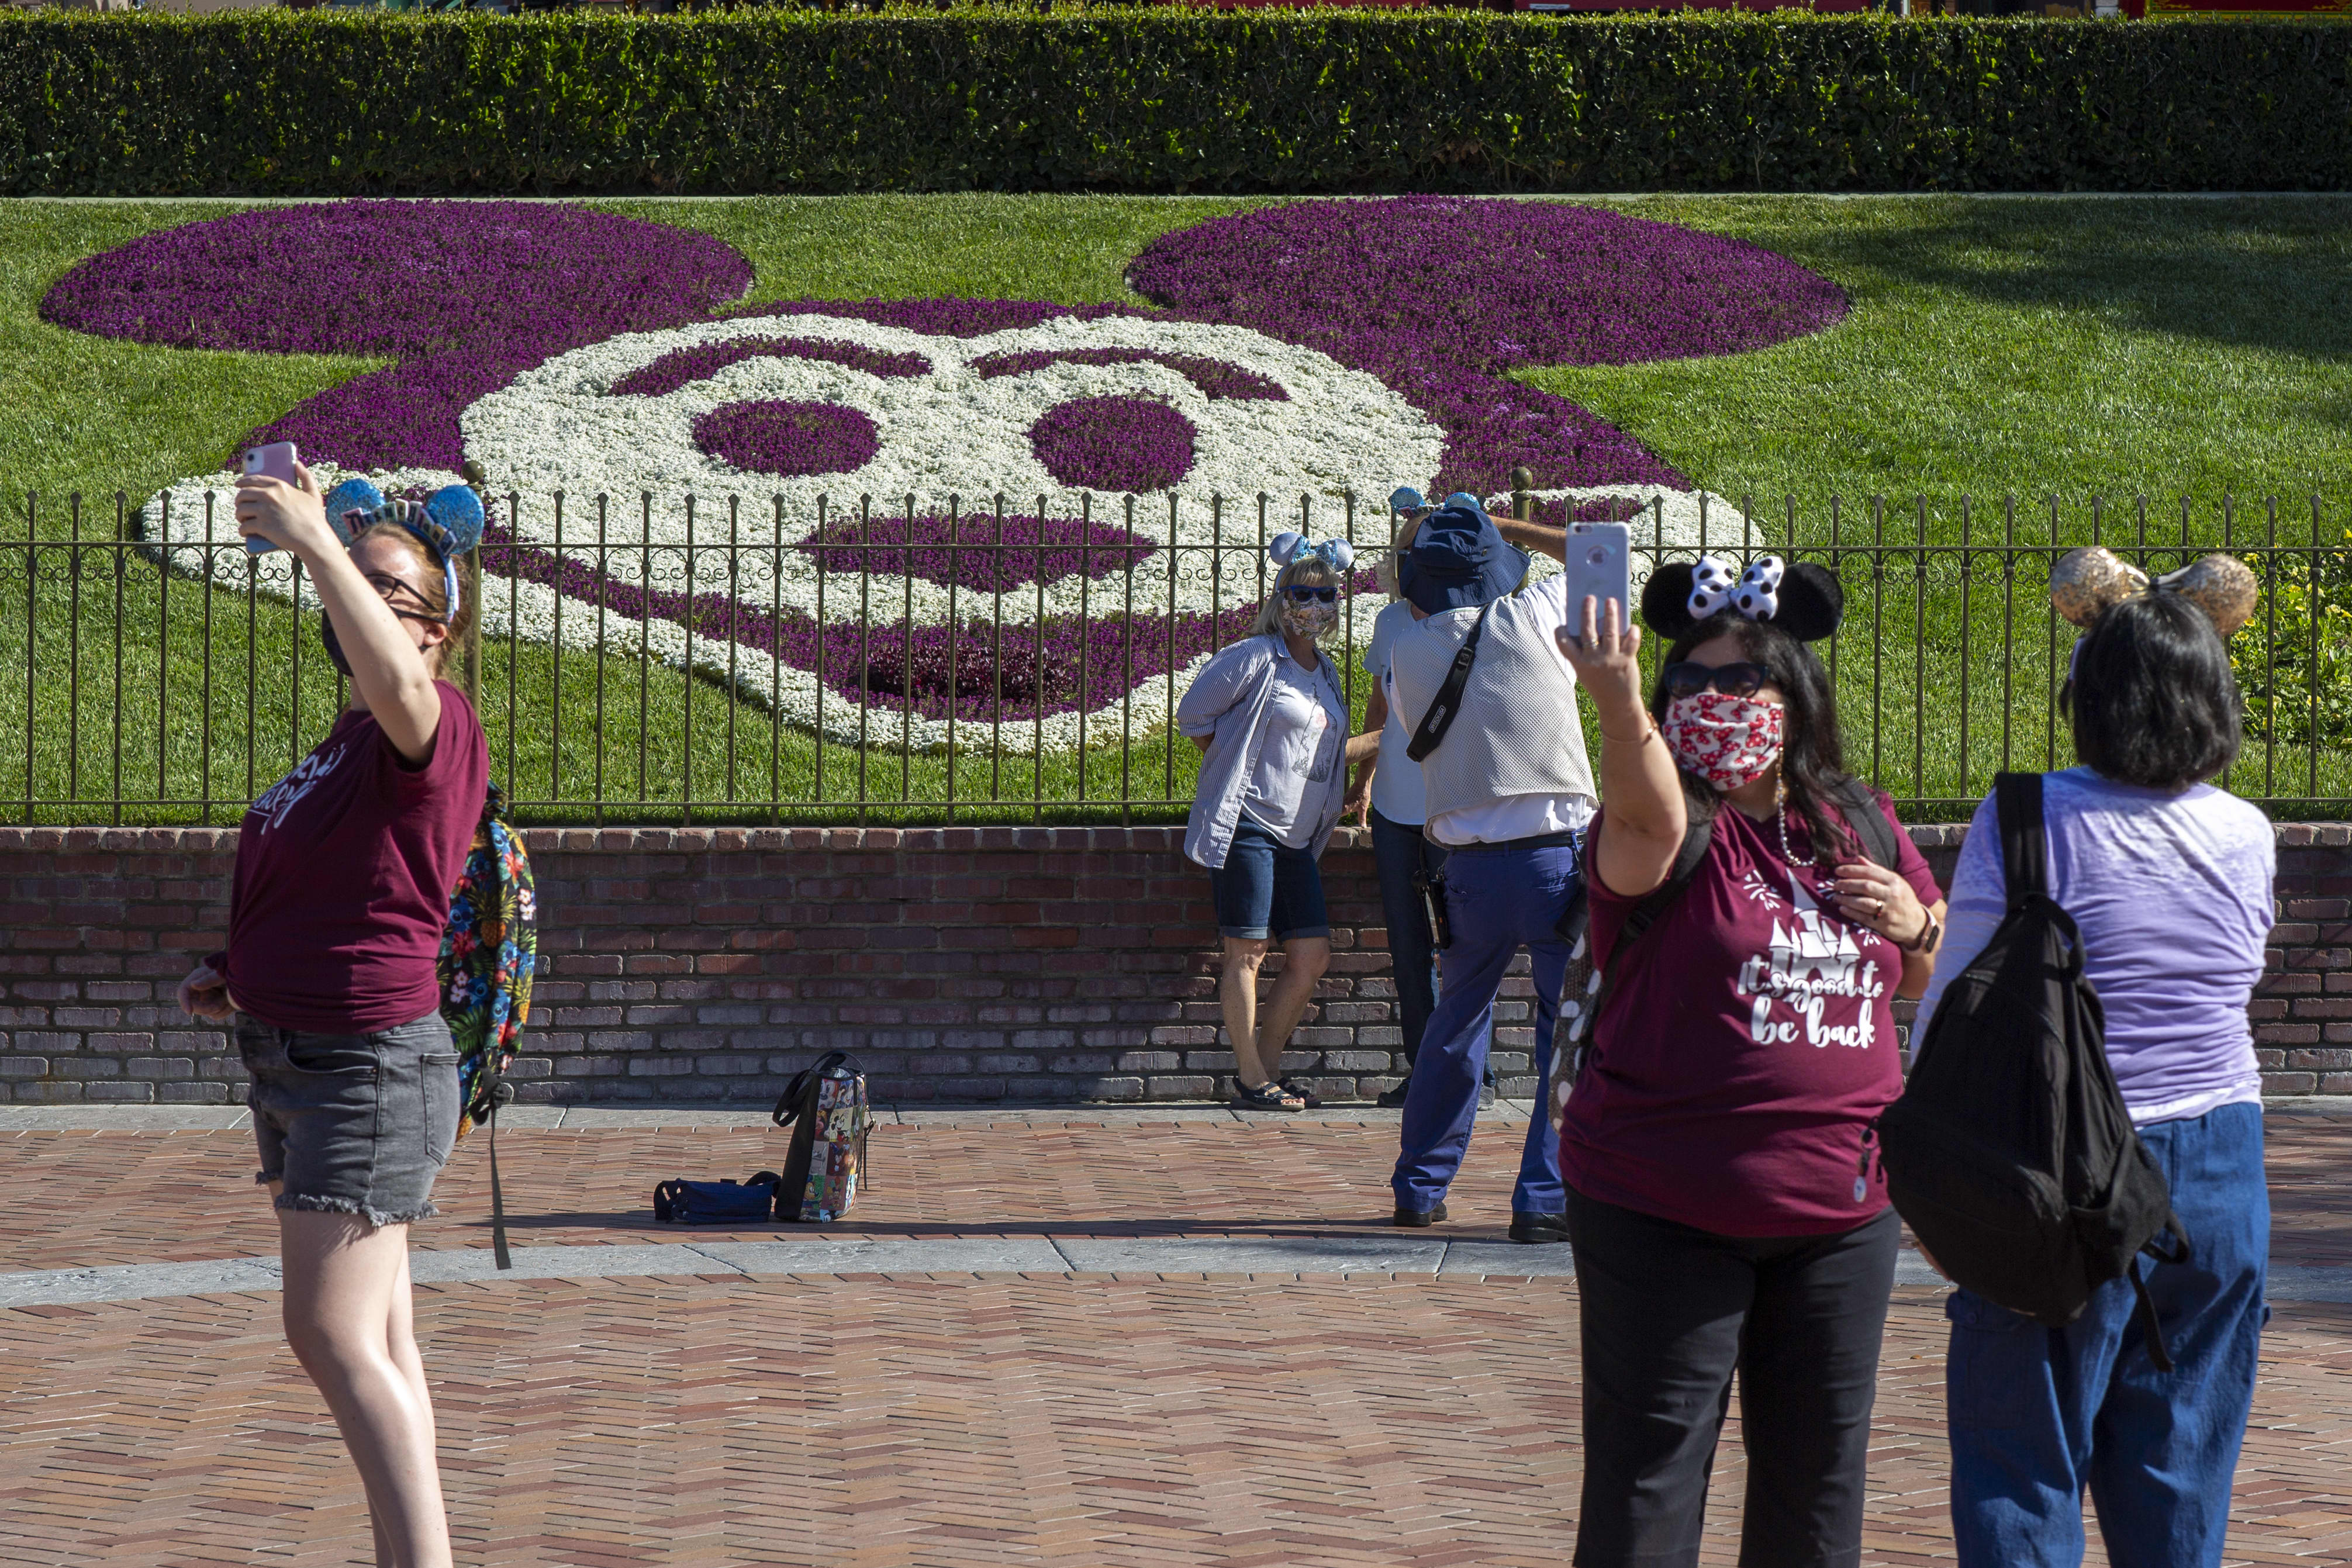 Disney parks took another big hit from Covid, but loosening pandemic restrictions offer hope for rebound